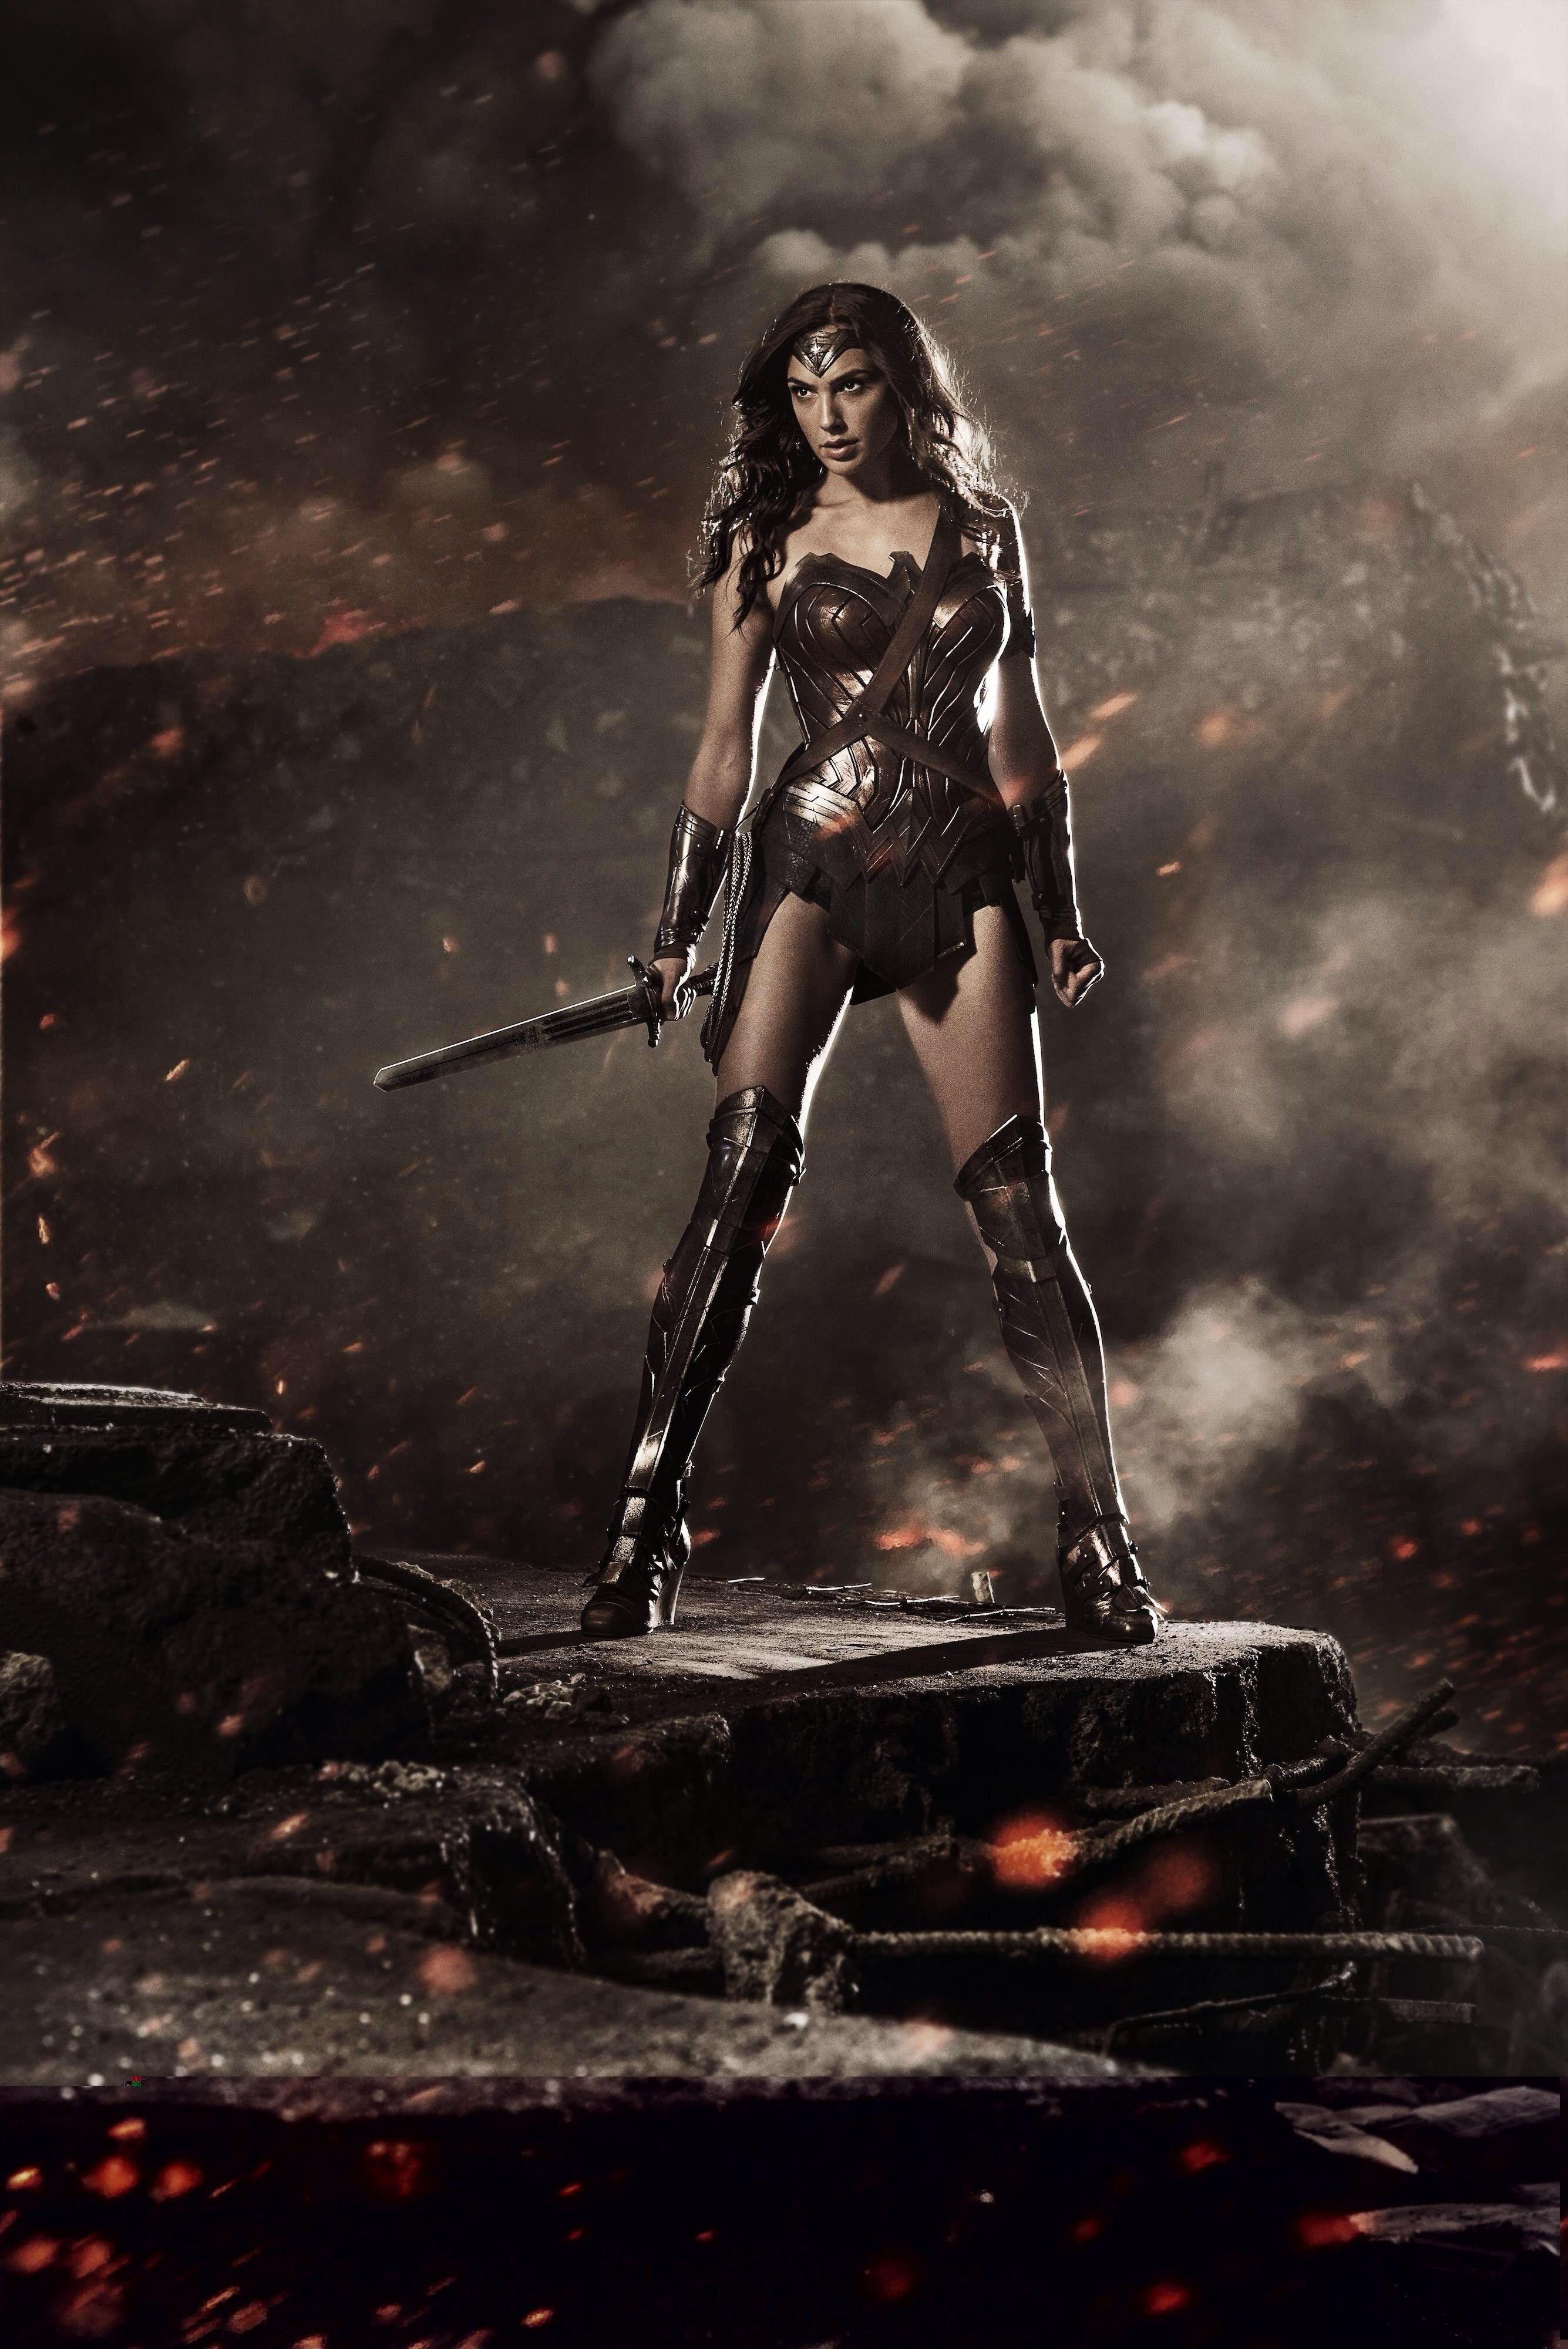 Download The Wonder Woman Wallpaper IPhone